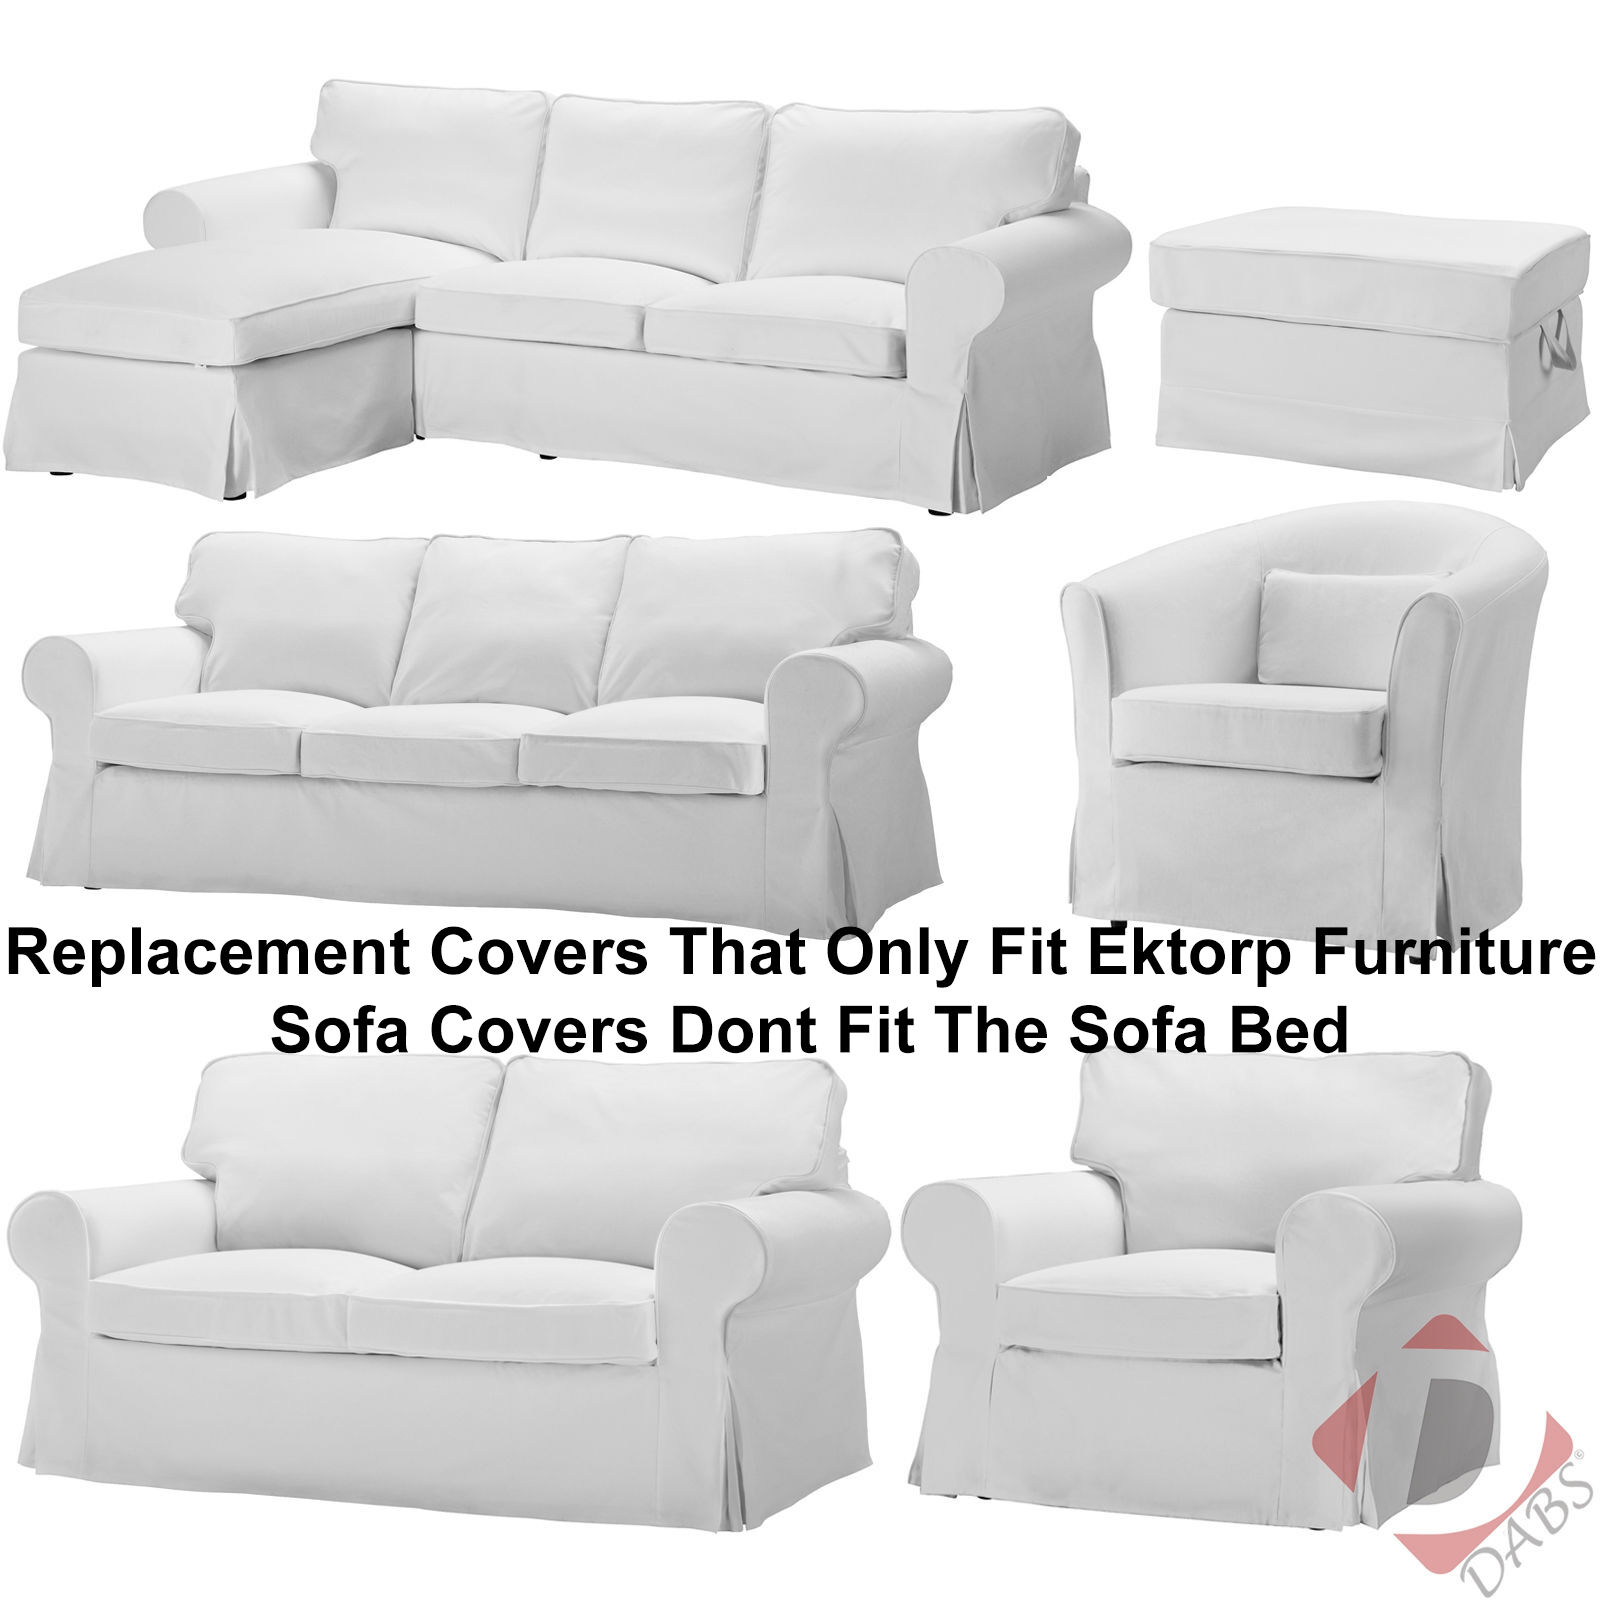 Ikea ektorp replacement blekinge white sofa footstool for Replacement couch cushions ikea